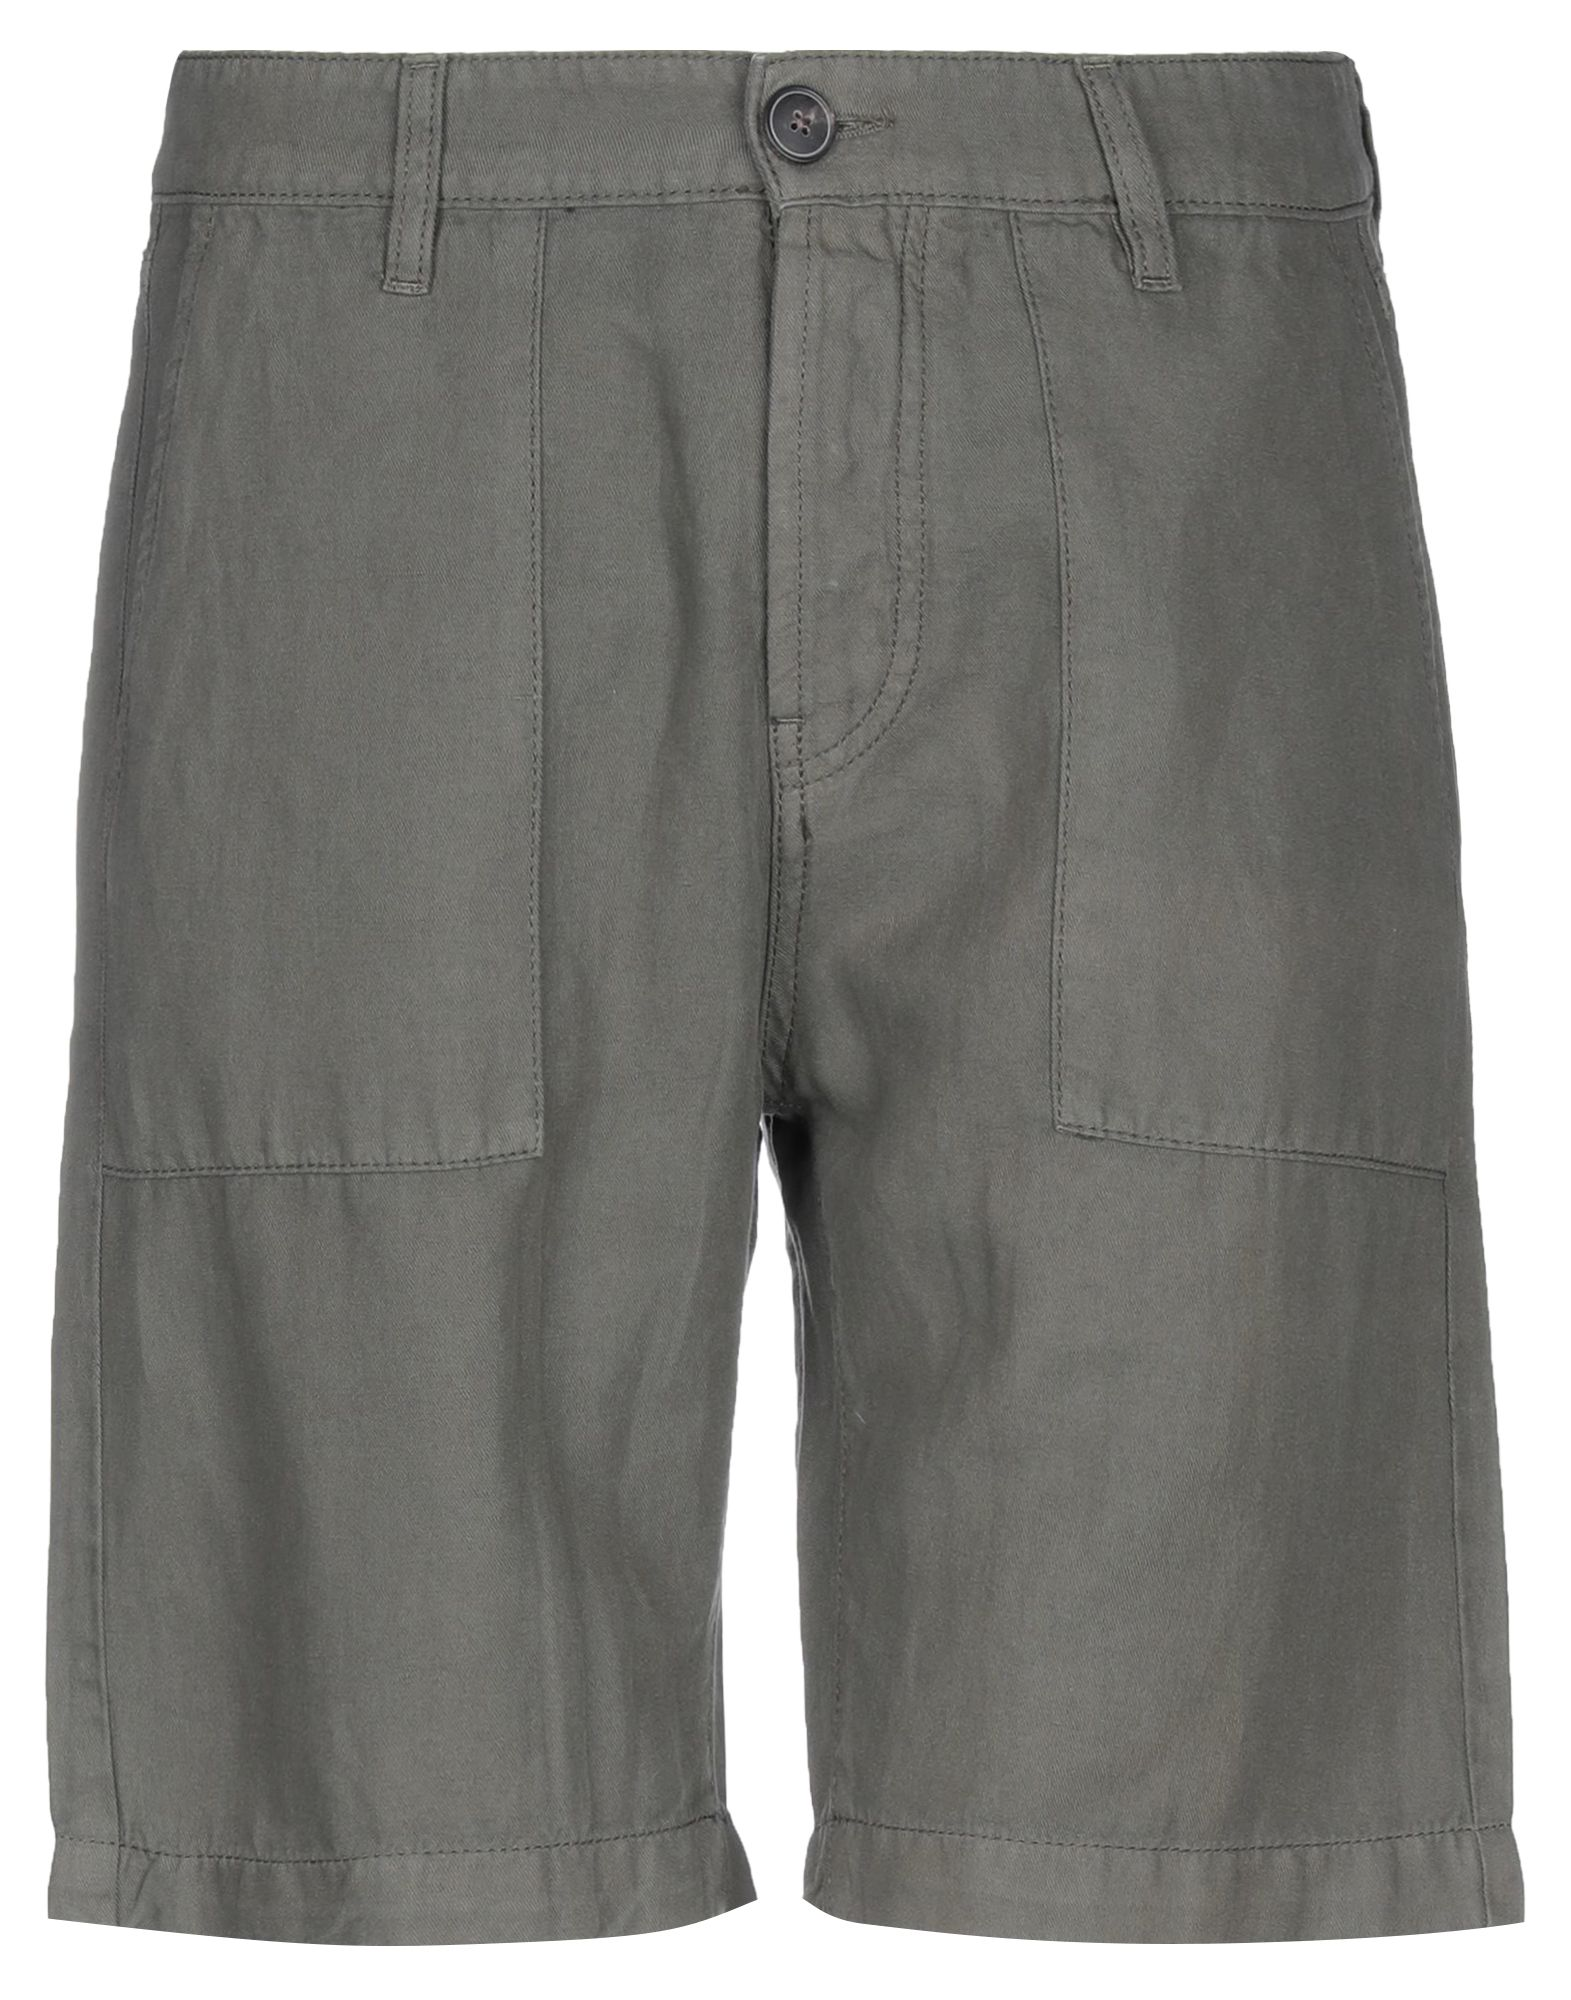 ELEVENTY Bermudas. twill, leather applications, logo, solid color, high waisted, regular fit, button closing, multipockets, contains non-textile parts of animal origin, pants. 58% Linen, 42% Cotton